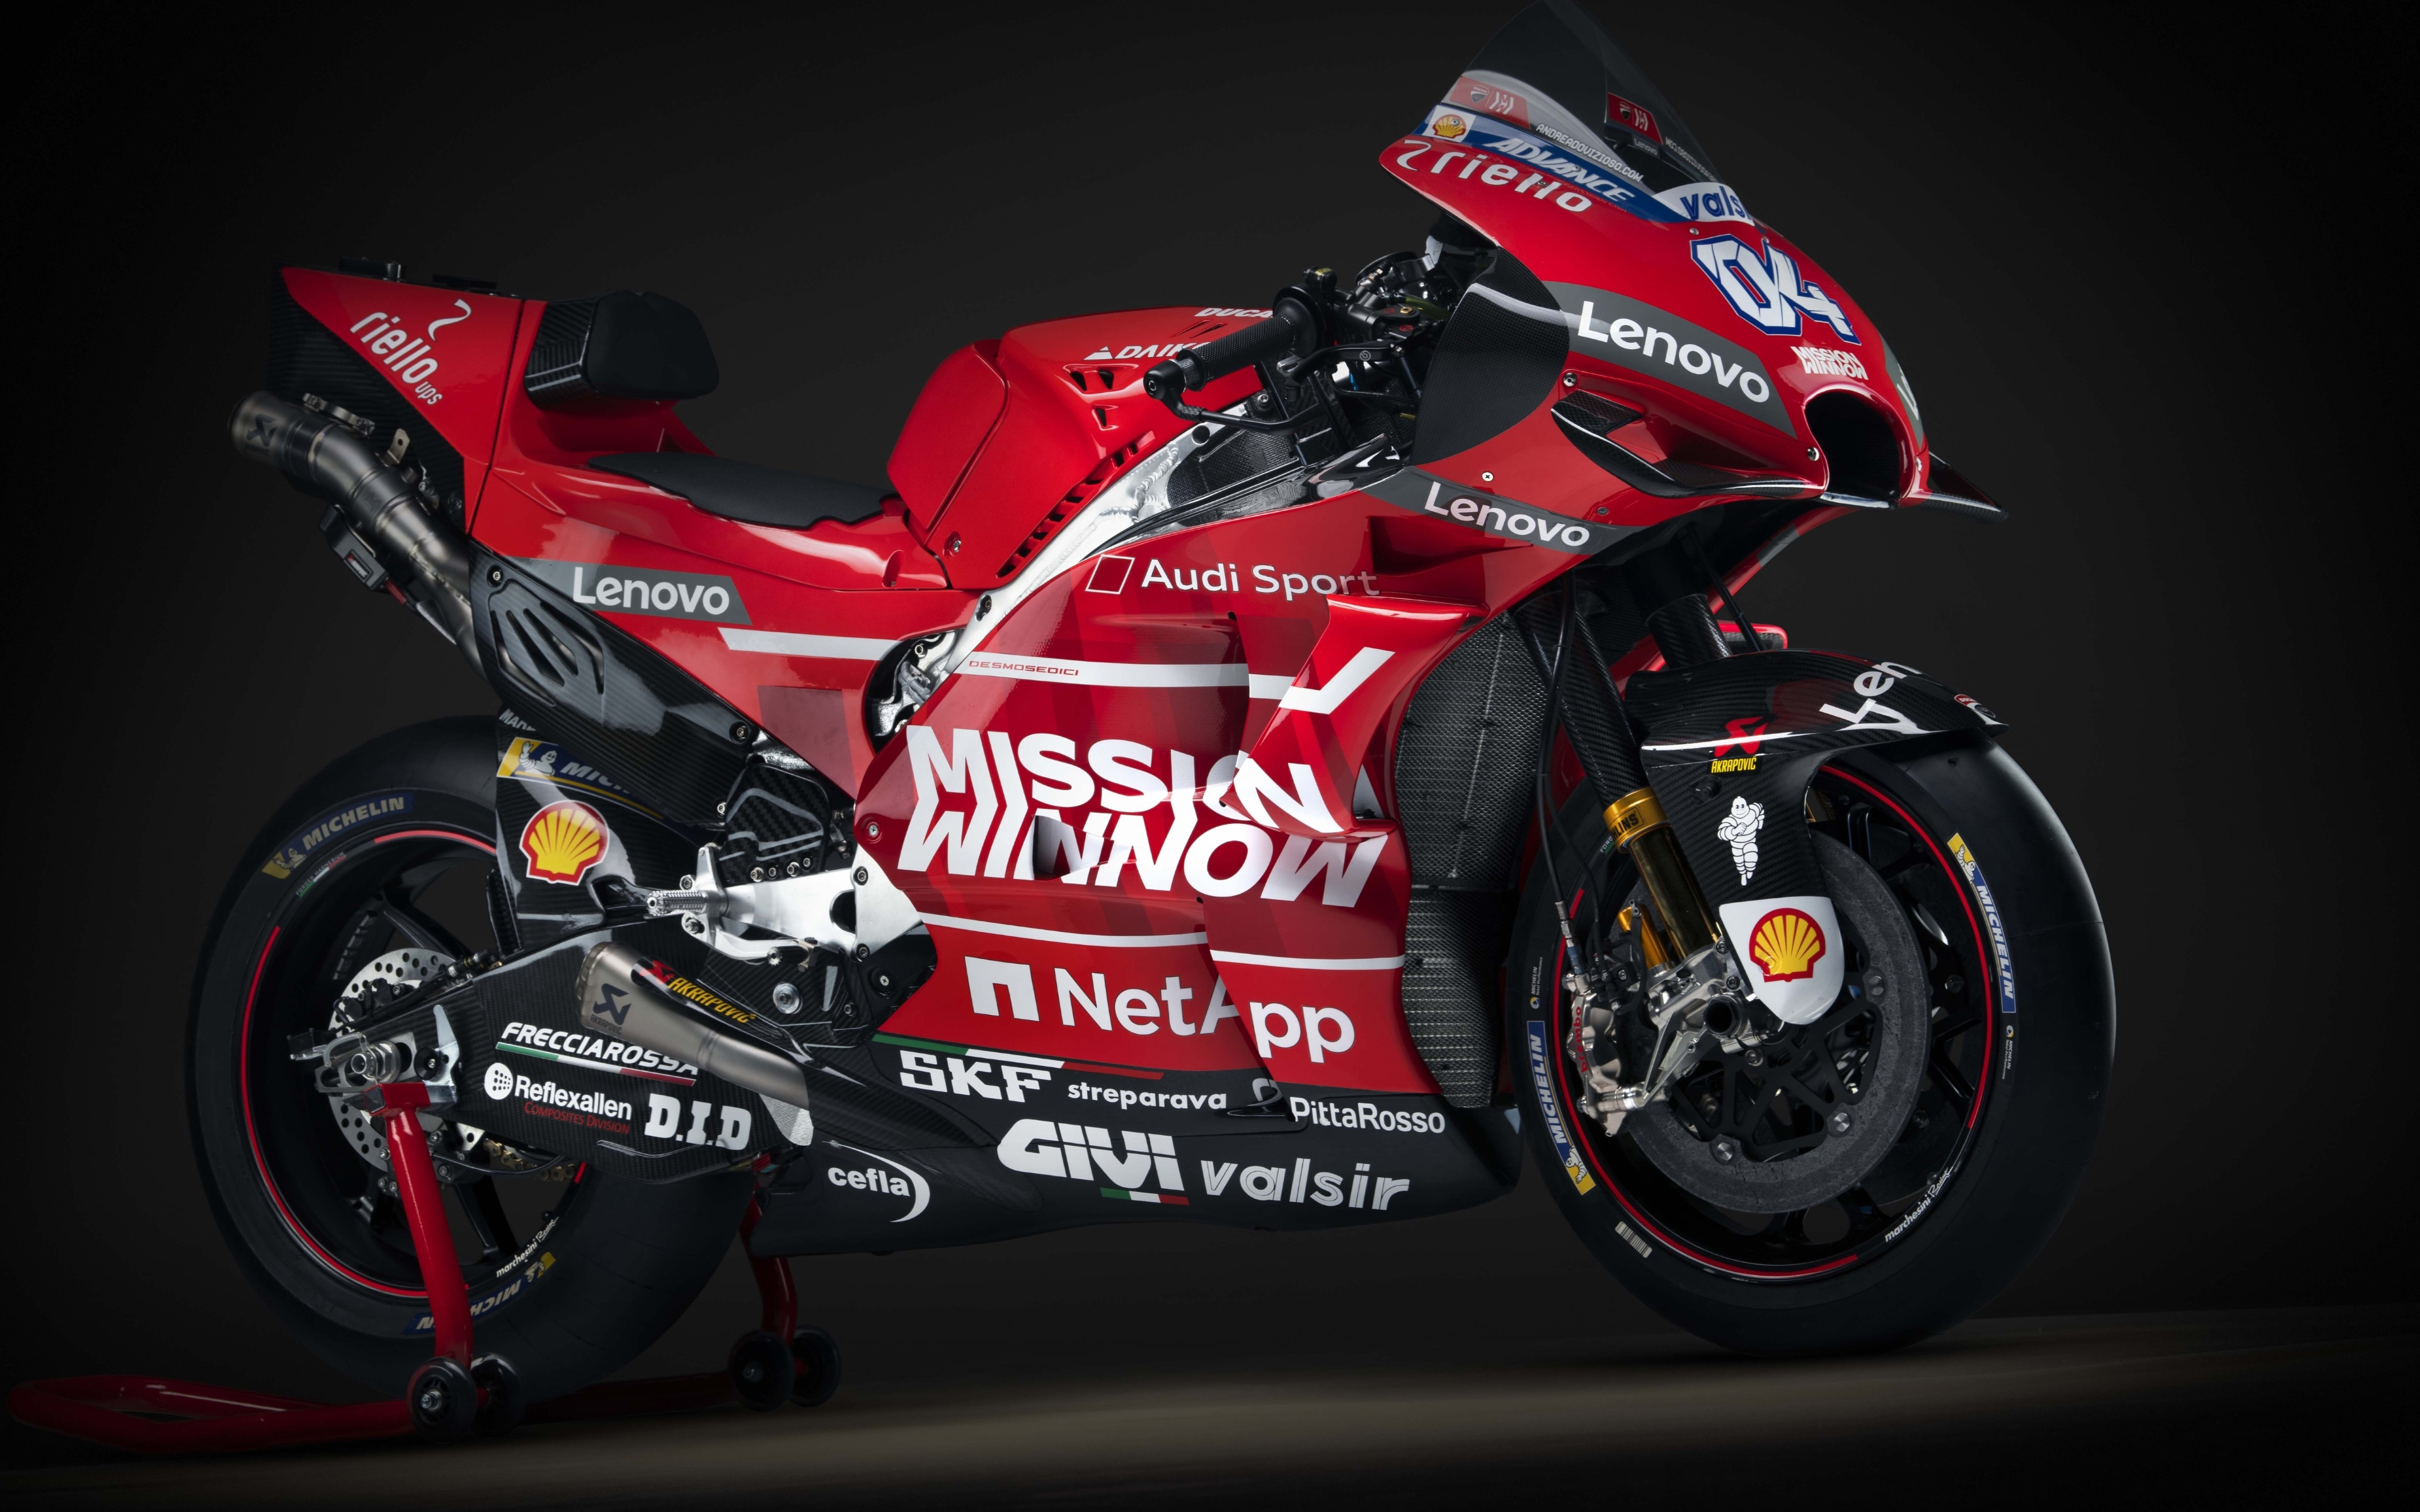 Ducati Desmosedici GP19 wallpaper 3840x2400